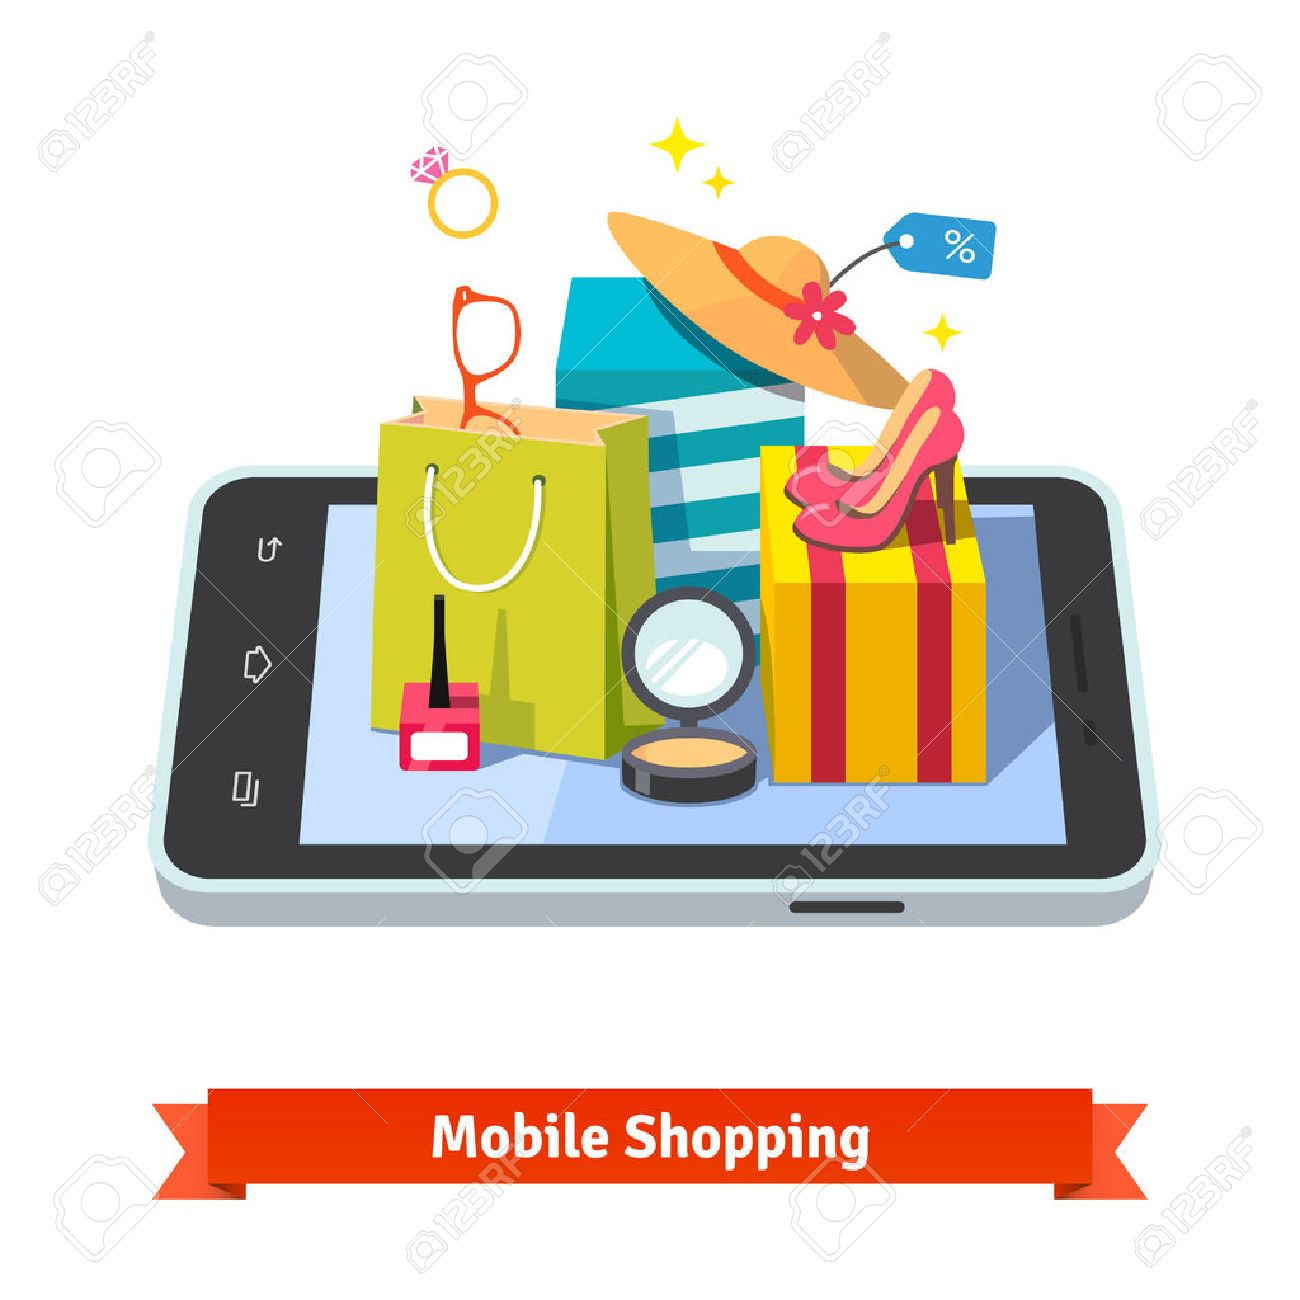 Woman mobile online shopping for accessories and cosmetics concept.